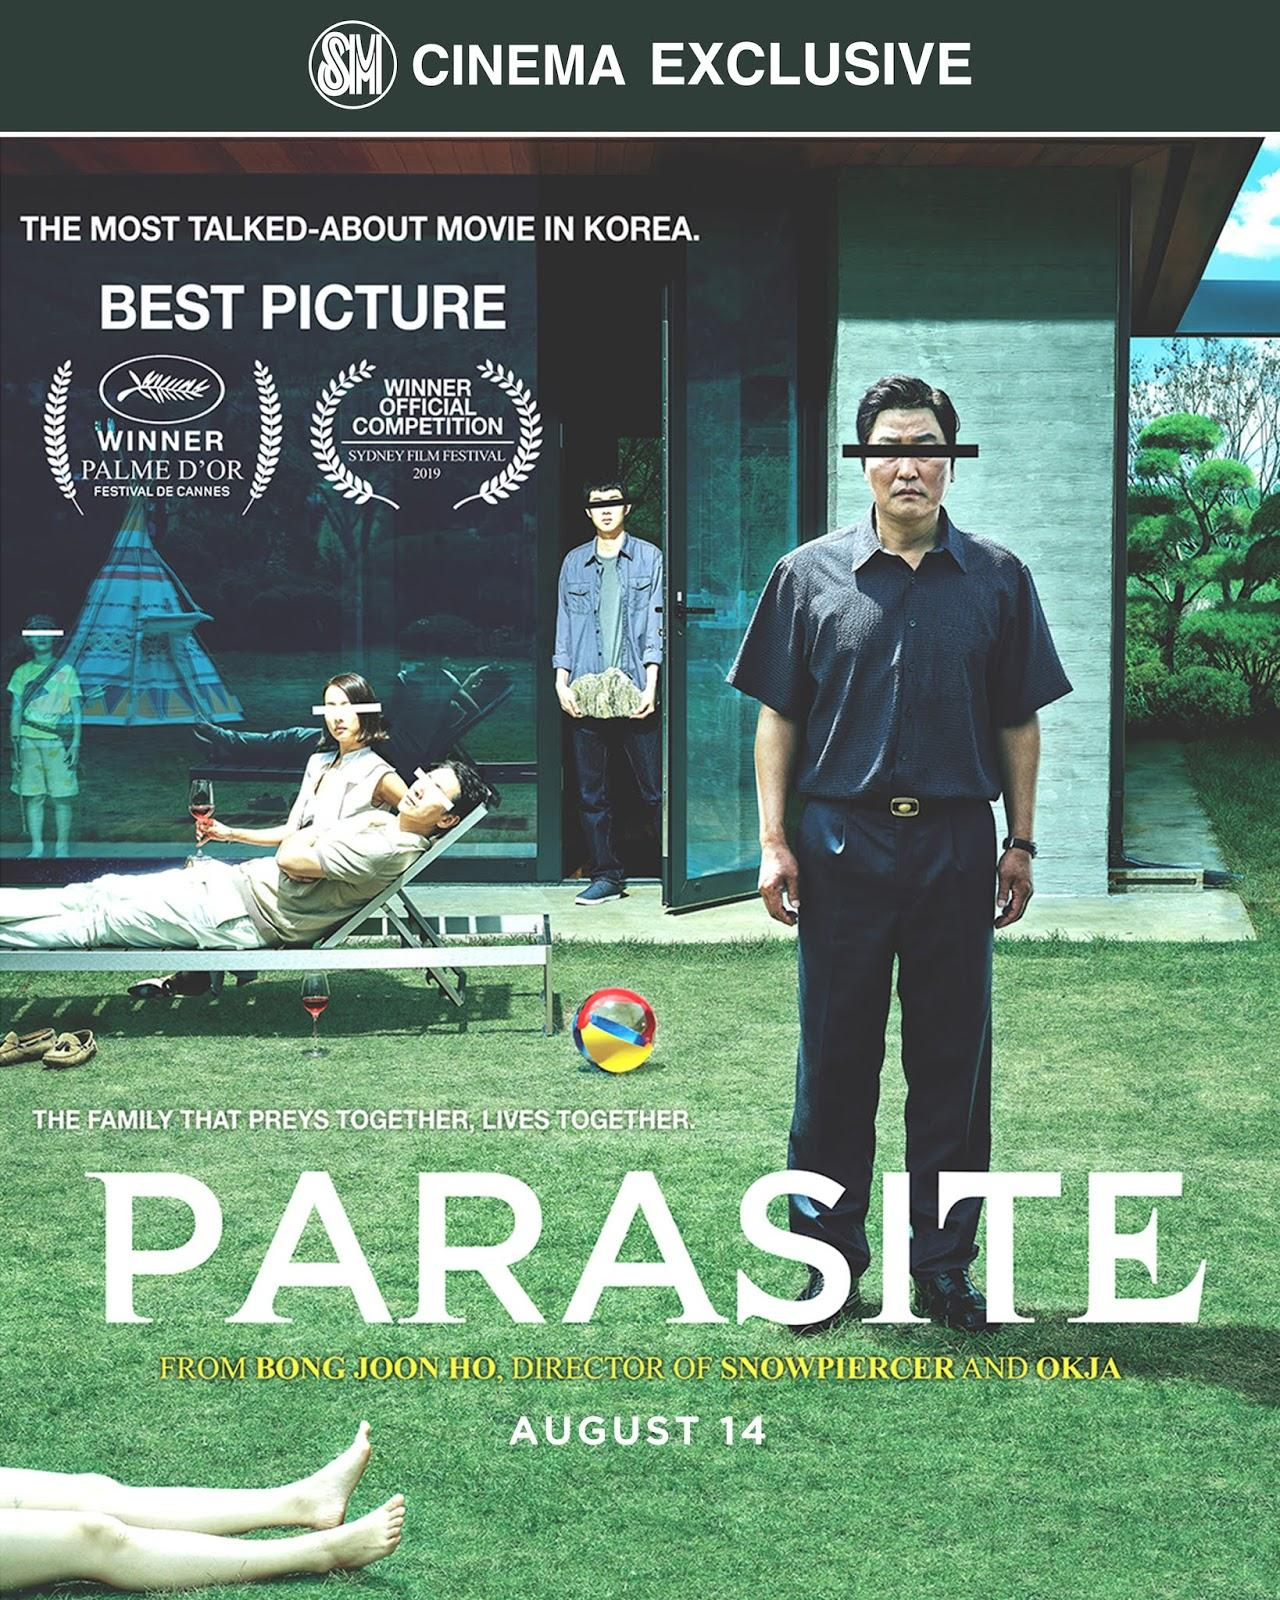 Parasite 2019 Movie Wallpapers - Wallpaper Cave